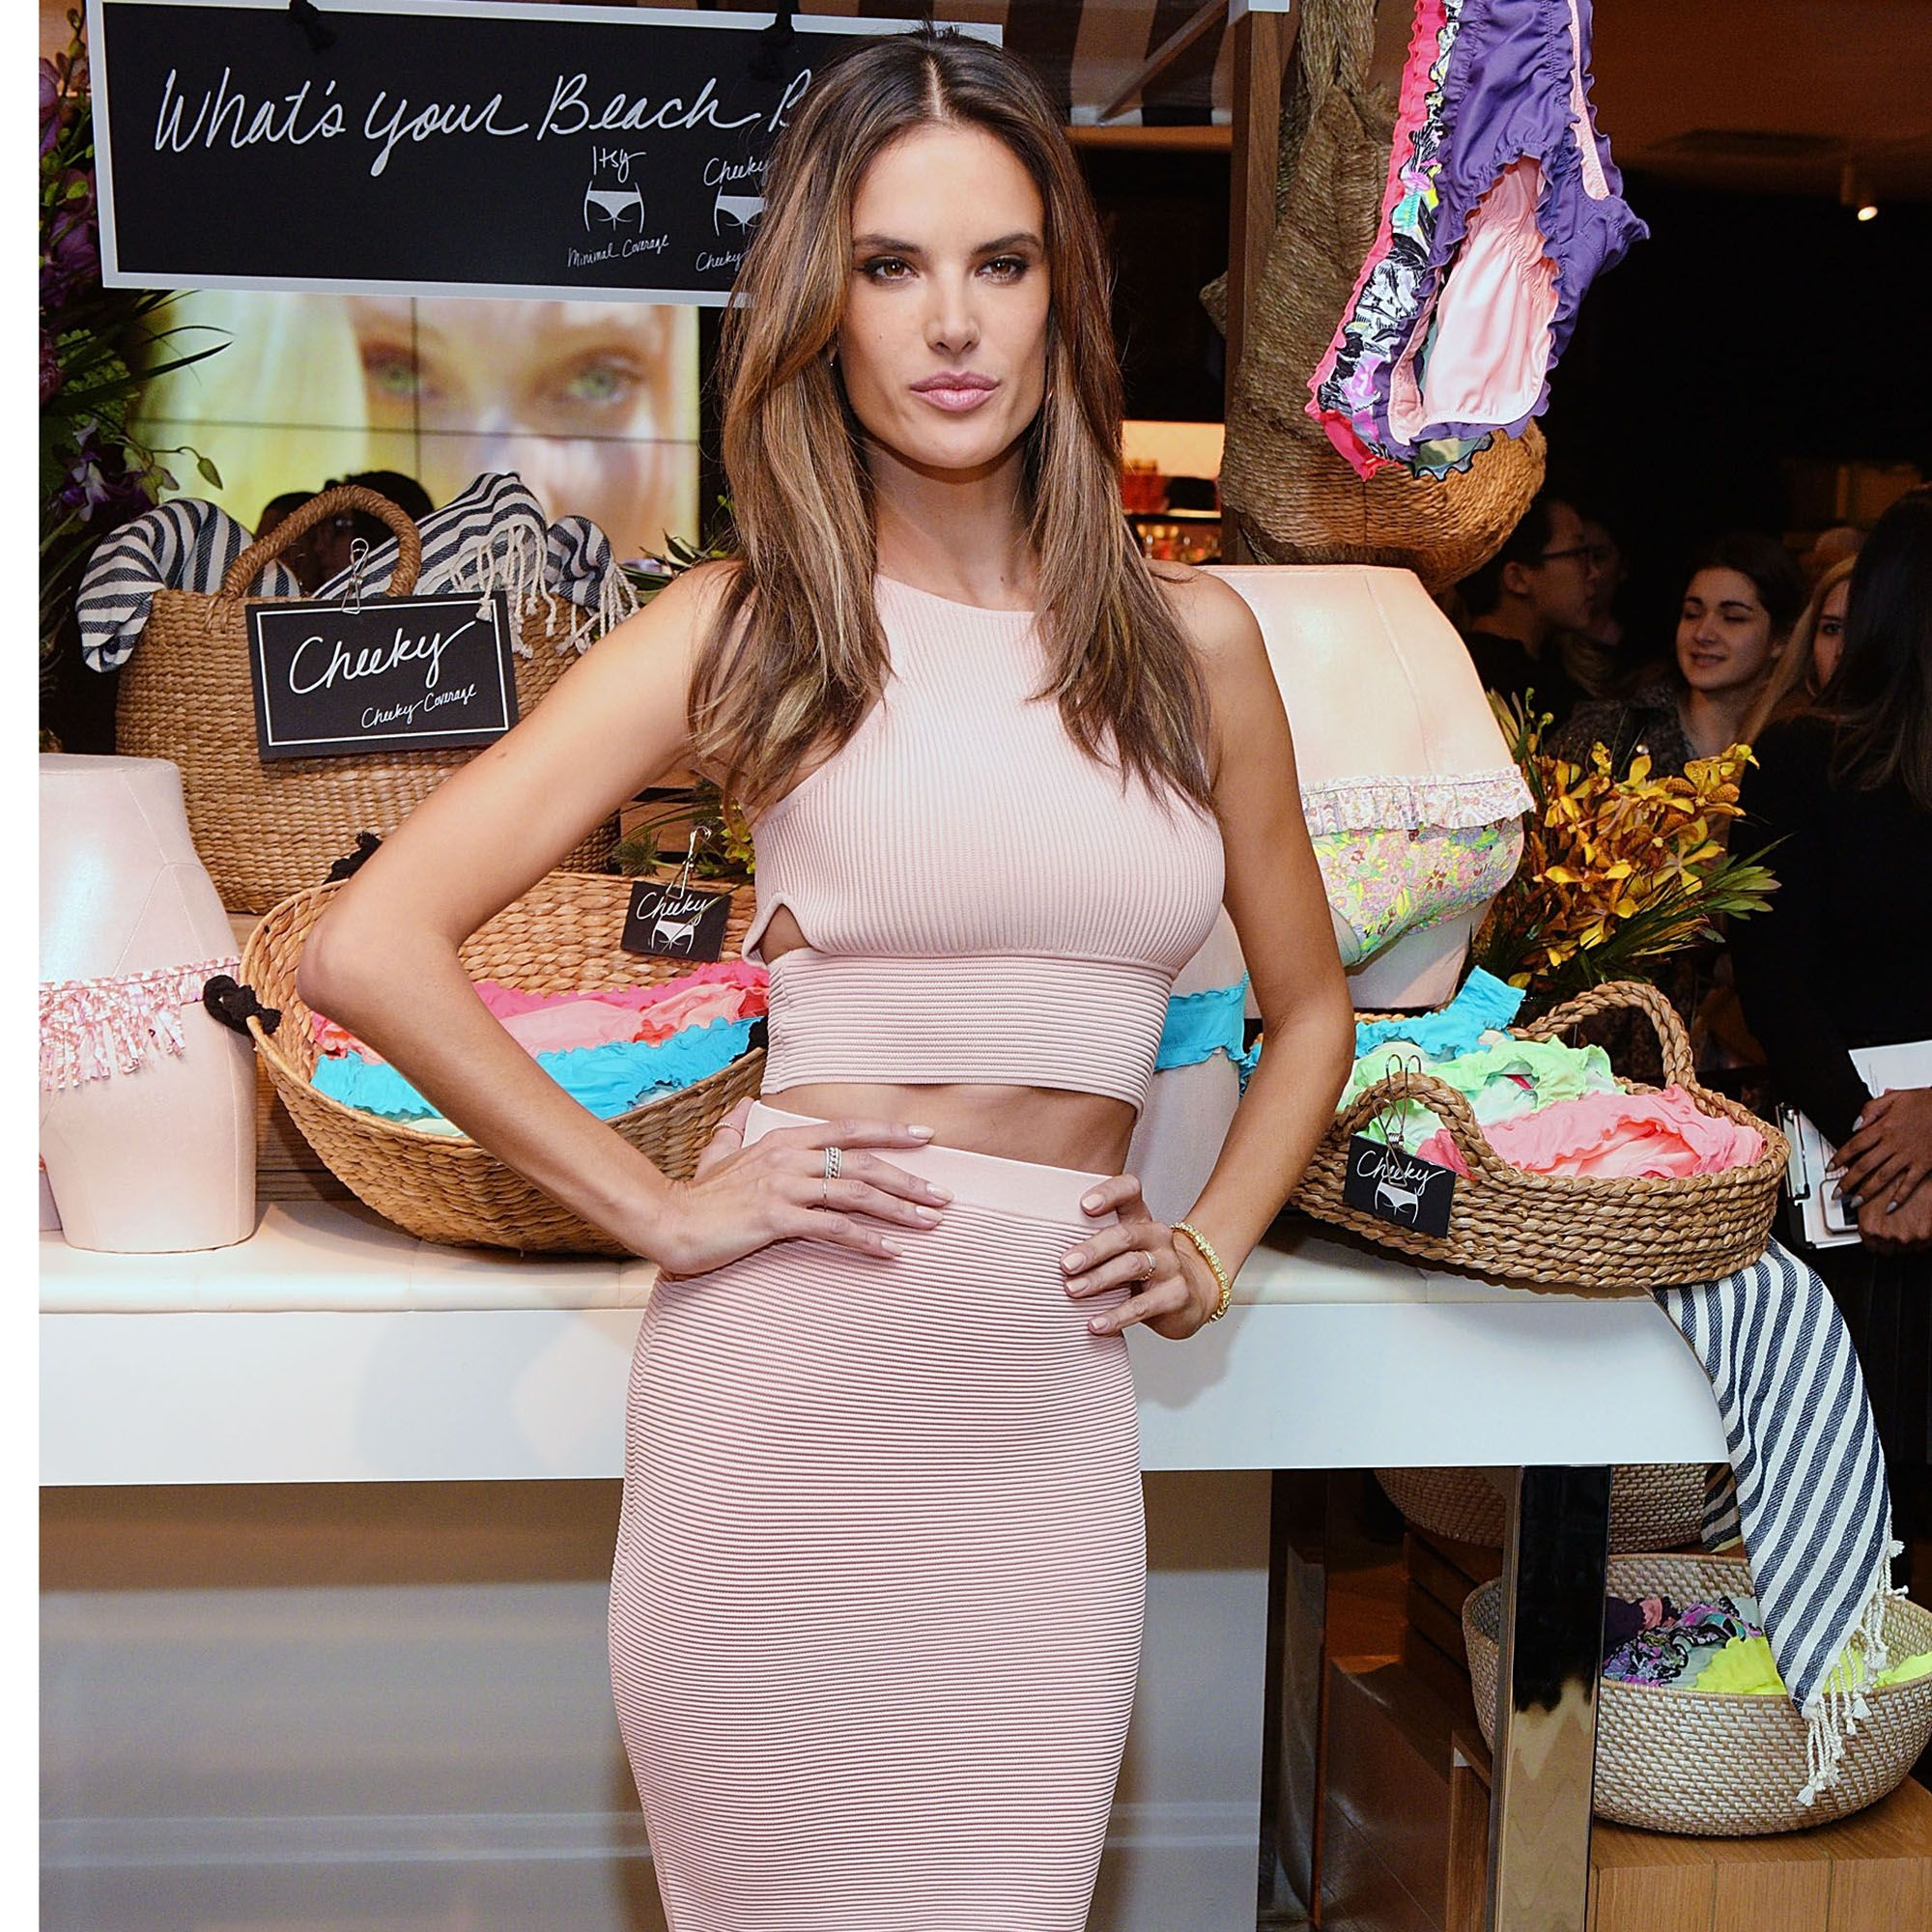 NEW YORK, NY - FEBRUARY 25:  Victoria's Secret Angel Alessandra Ambrosio celebrates the sexiest Push-ups and The Victoria's Secret Swim Special at Victoria's Secret Herald Square on February 25, 2015 in New York City.  (Photo by Grant Lamos IV/Getty Images)